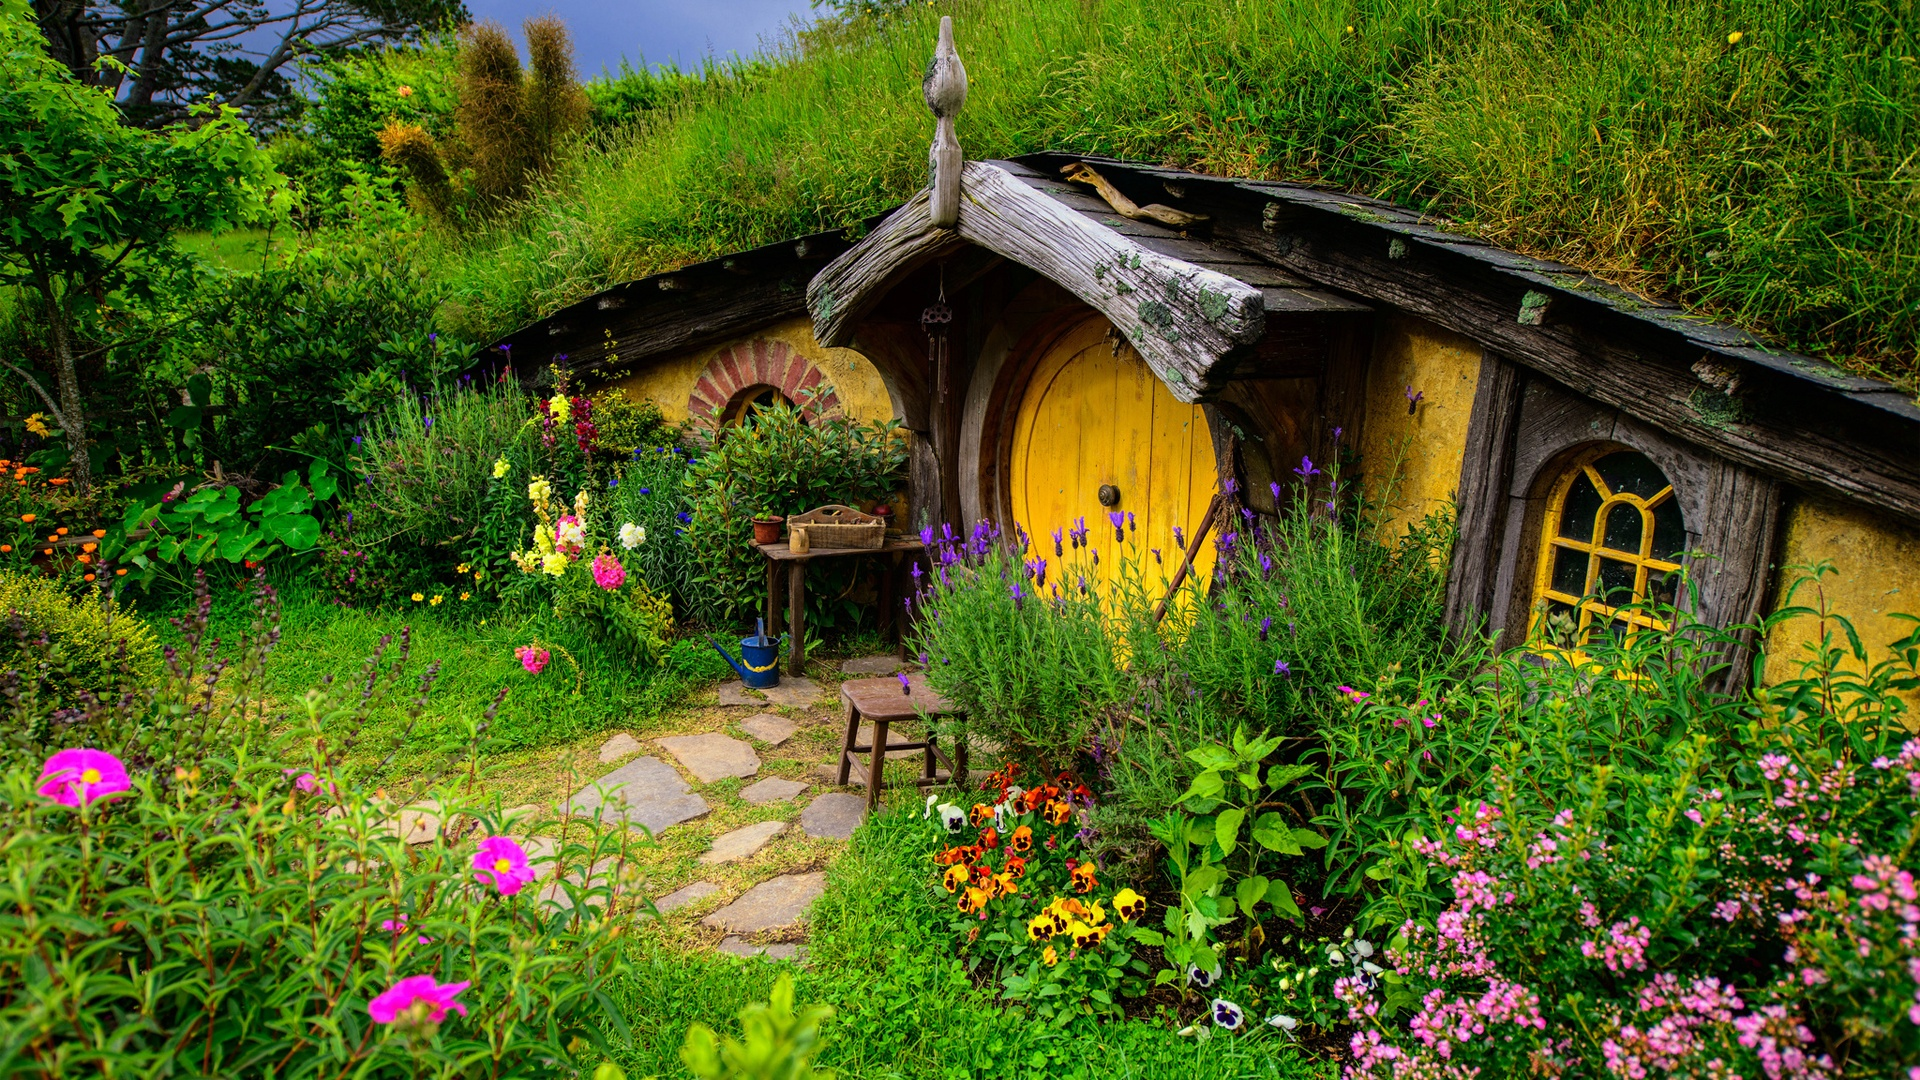 Lord Of The Rings Hobbit House Hill Flowers Grass